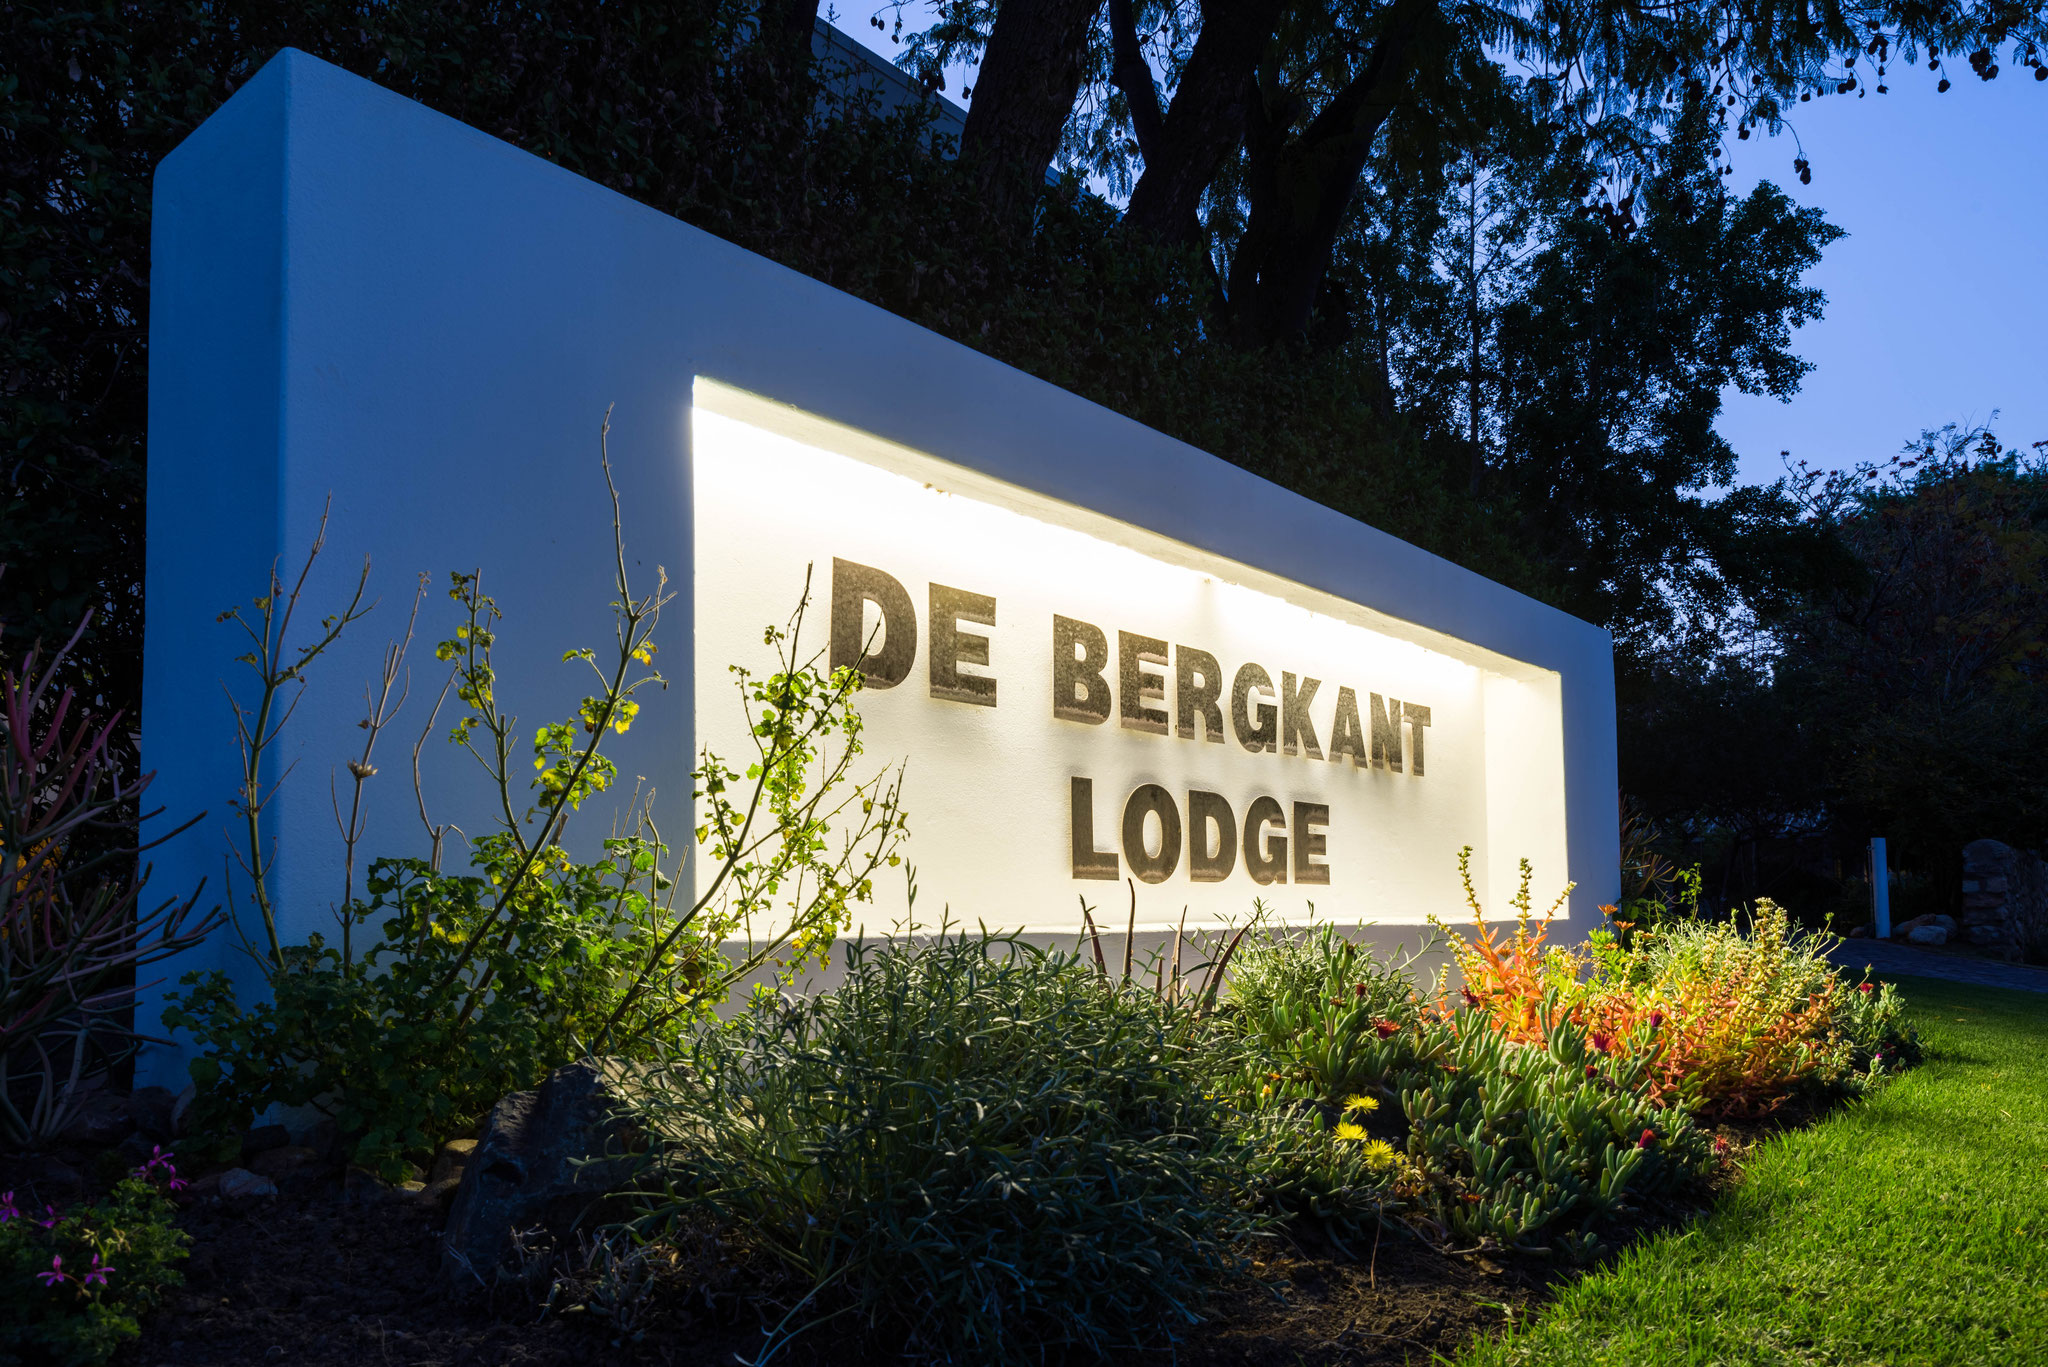 'De Bergkant Lodge' Entrance Sign